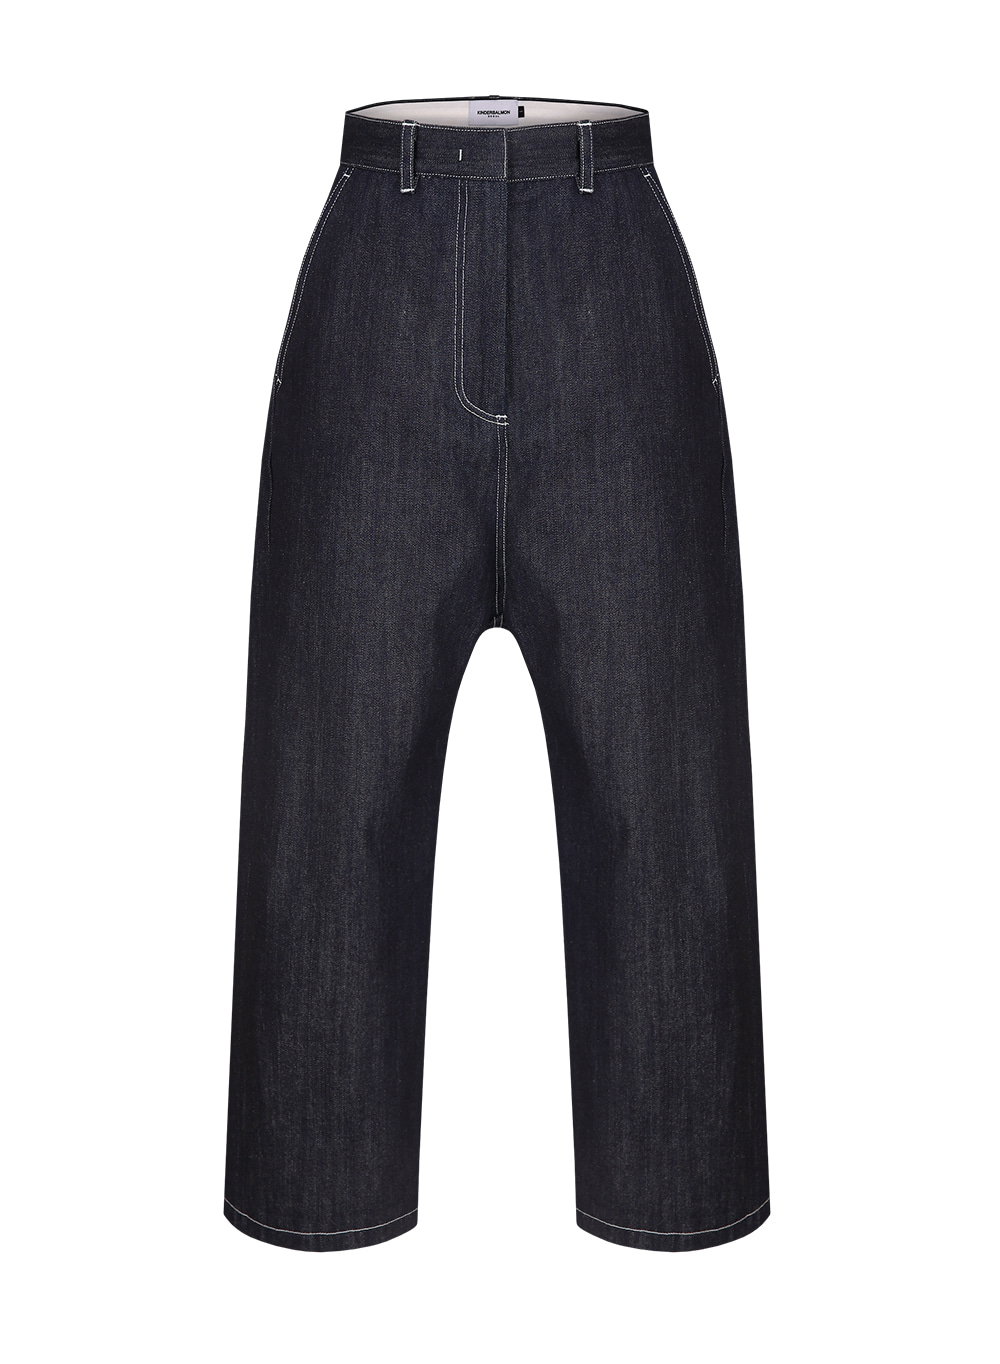 FW18 COCOON PANTS DENIM NAVY